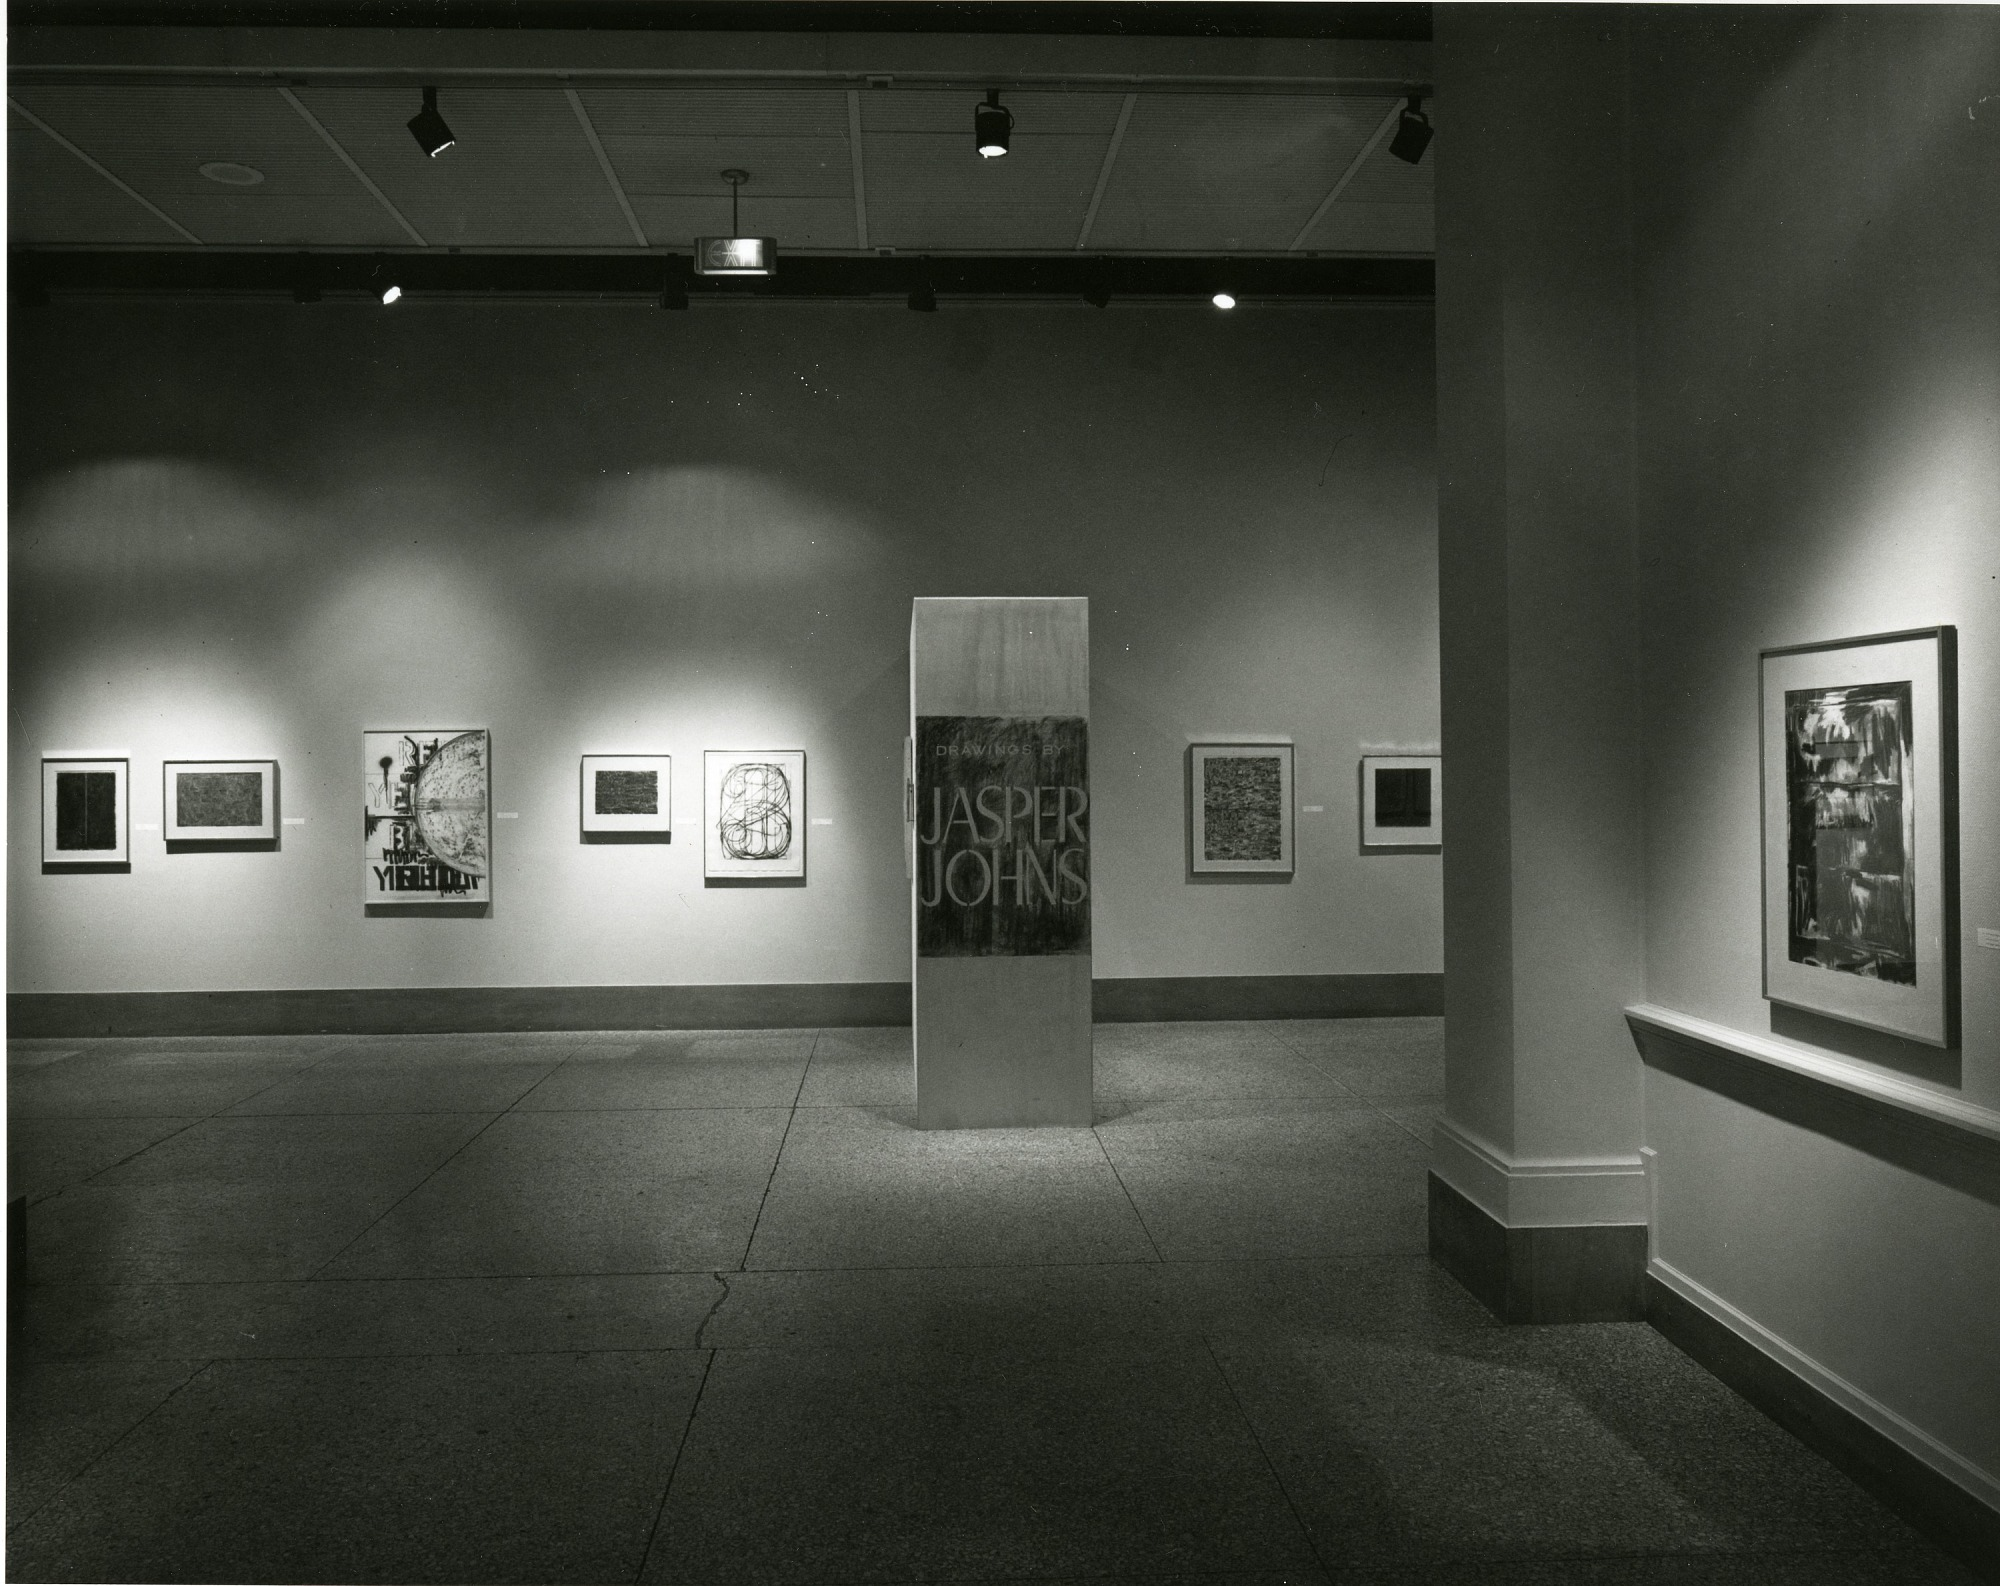 """Exhibit Space for """"Drawings by Jasper Johns"""""""